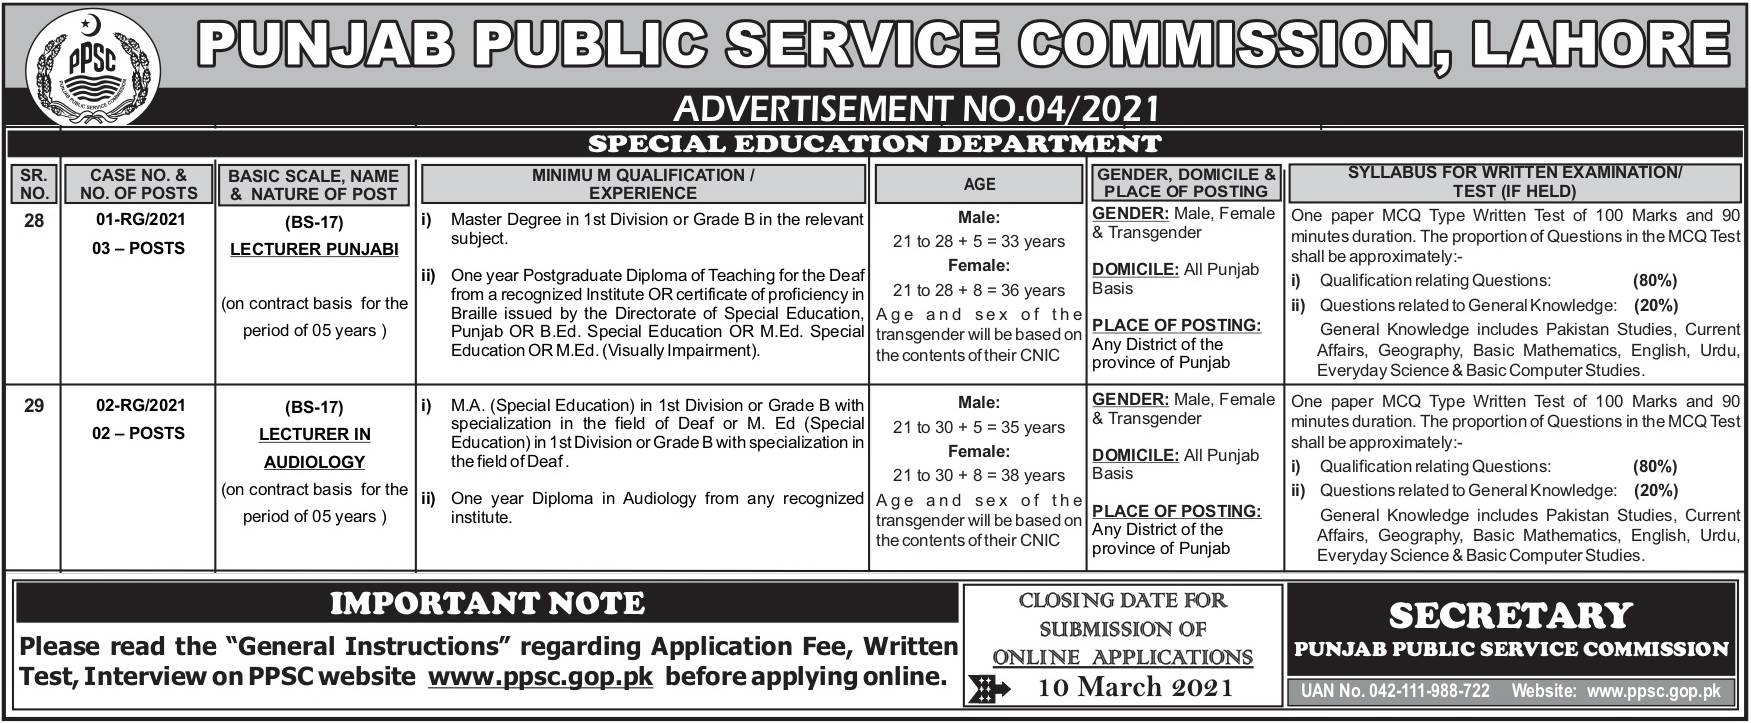 PPSC Special Education Department Jobs 2021